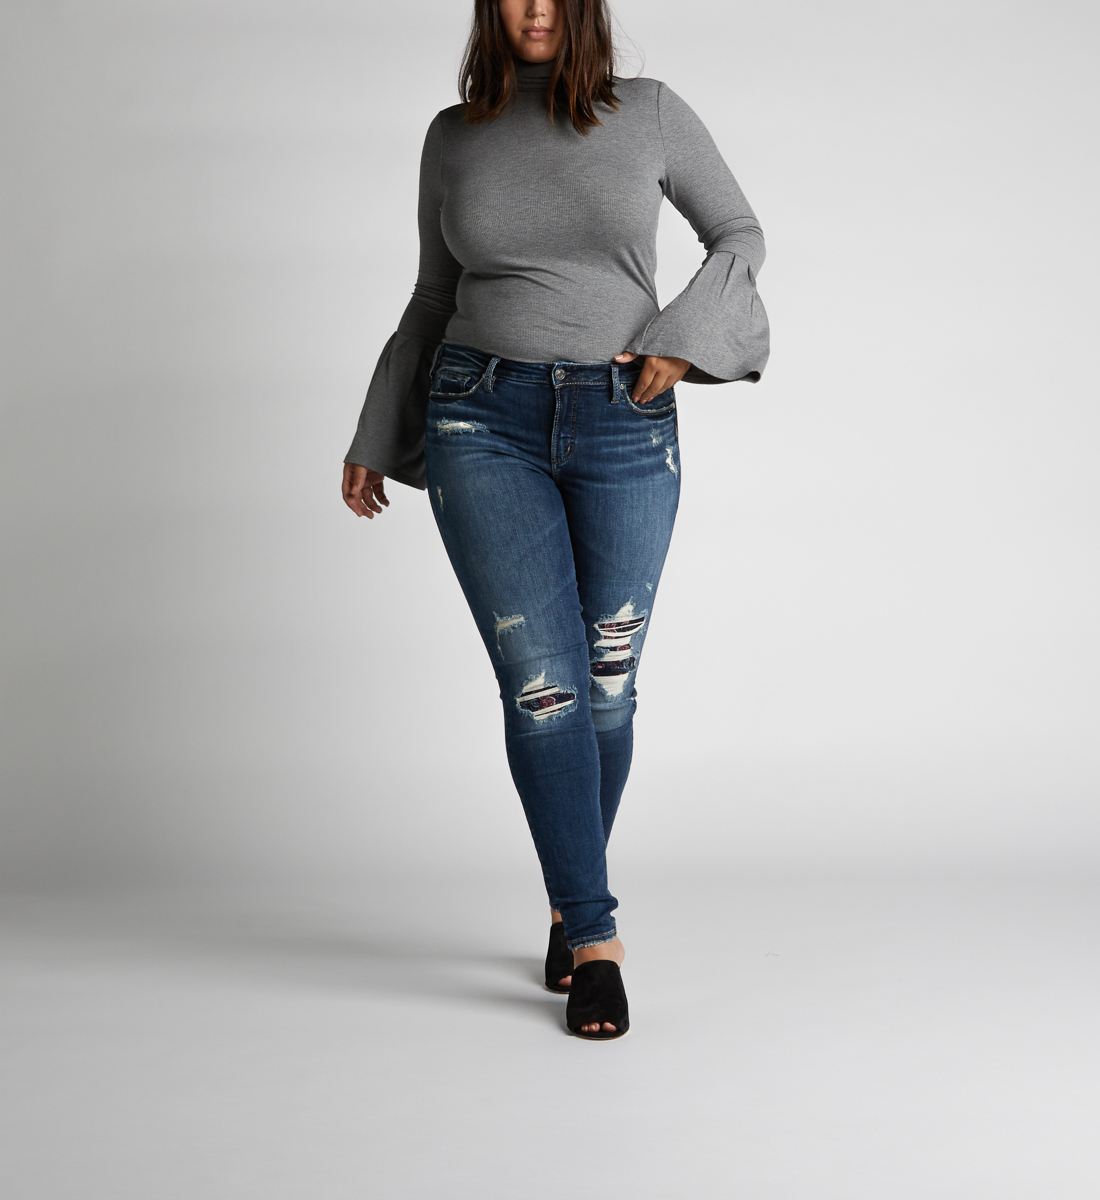 9434178c453 Avery High Rise Skinny Leg Jeans Plus Size